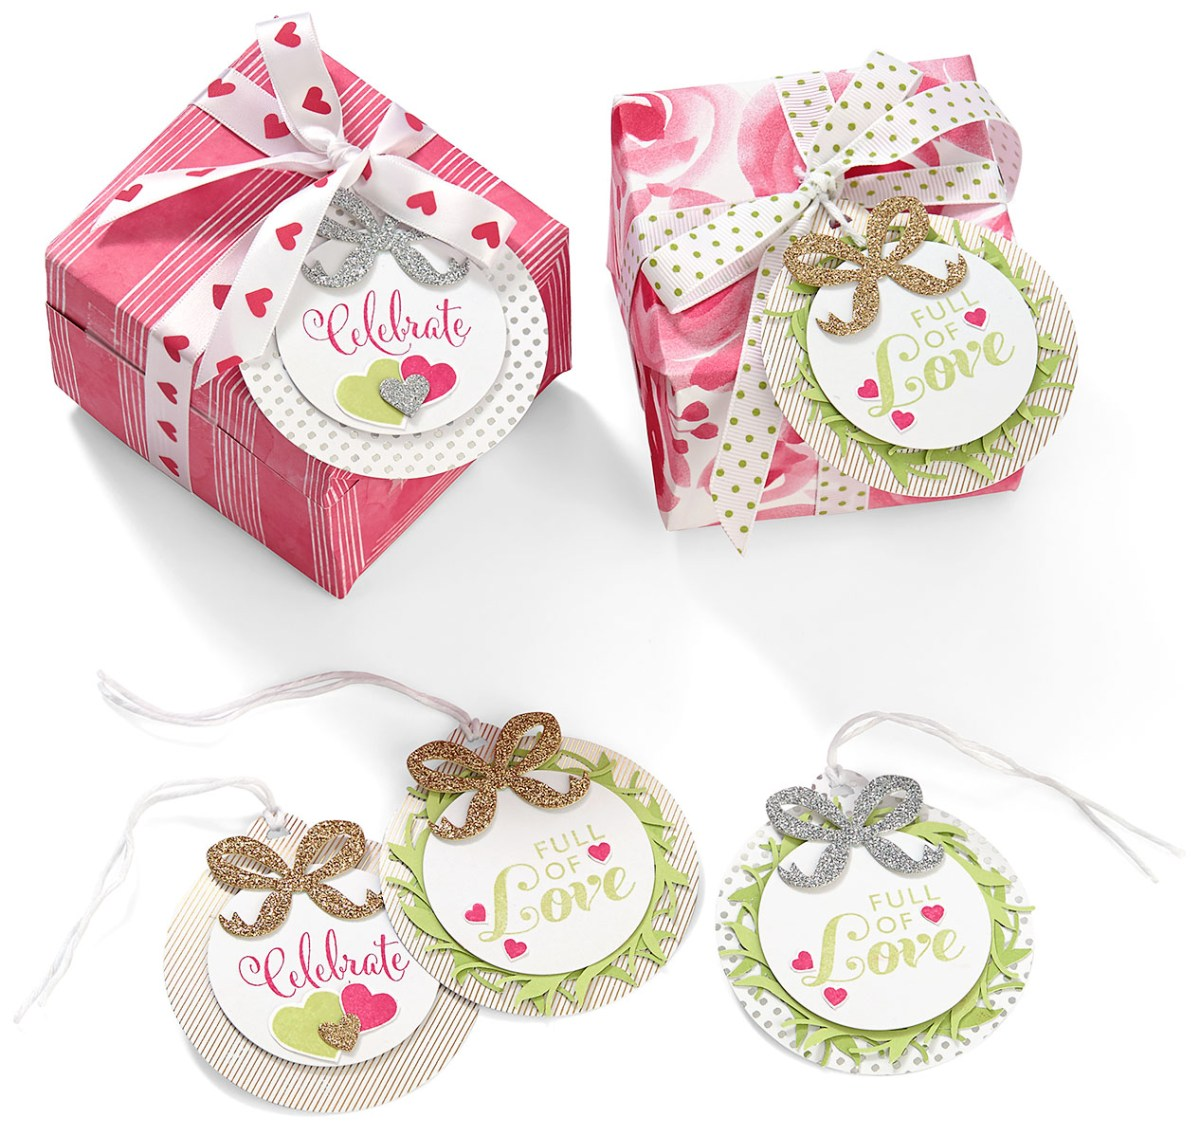 holiday favorites #ctmh #closetomyheart #diy #gift #present #tag #ribbon #bow #cutabove #celebrate #love